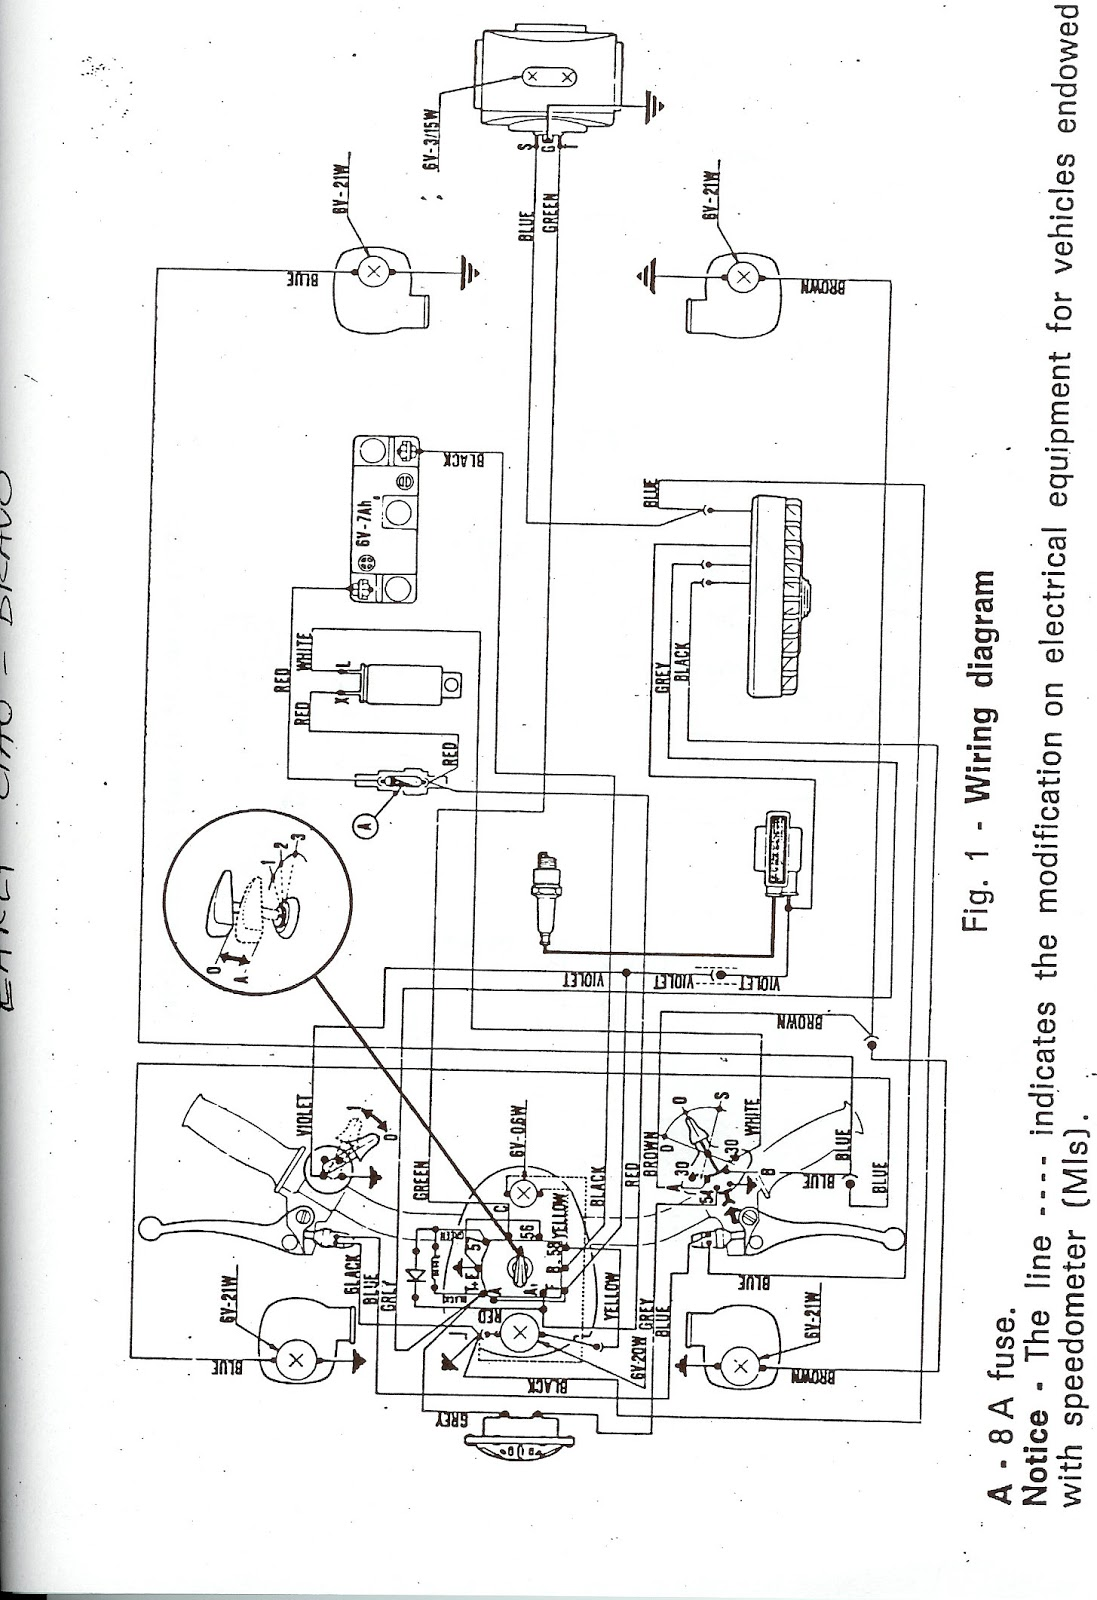 hight resolution of puch moped wiring diagram 25 wiring diagram images moped ignition diagram 50cc scooter wiring diagram